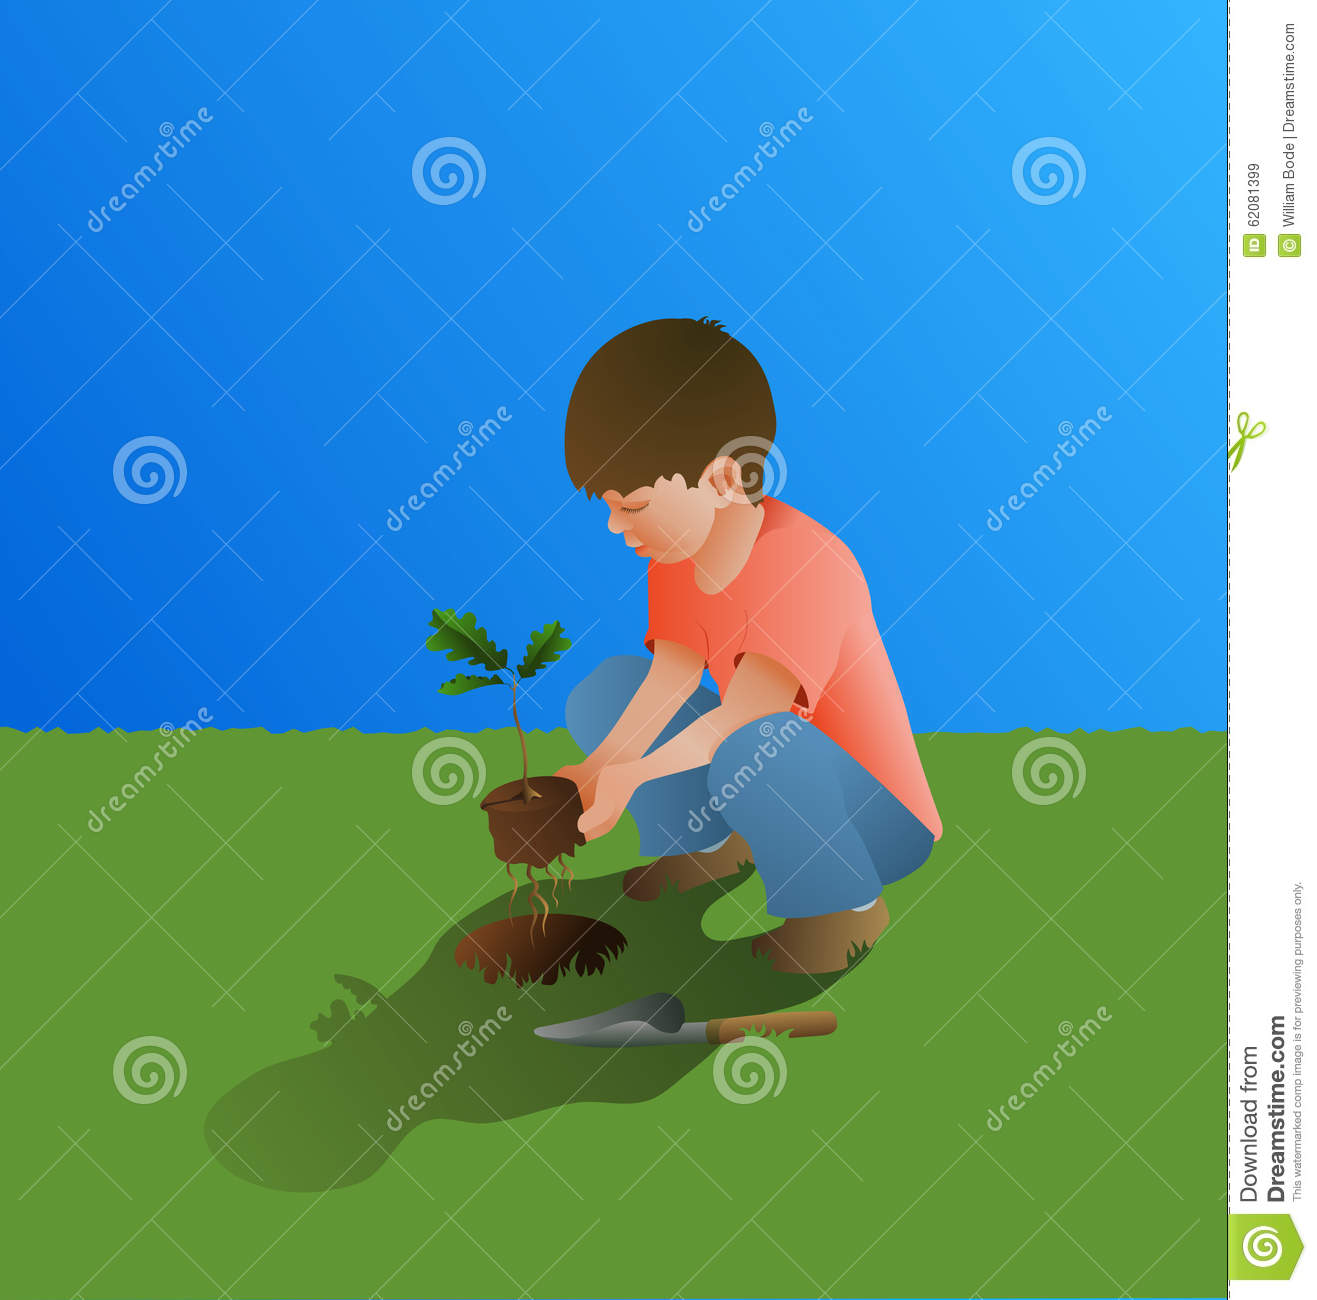 Planting An Oak Tree Best Time : Young boy planting oak tree stock illustration image